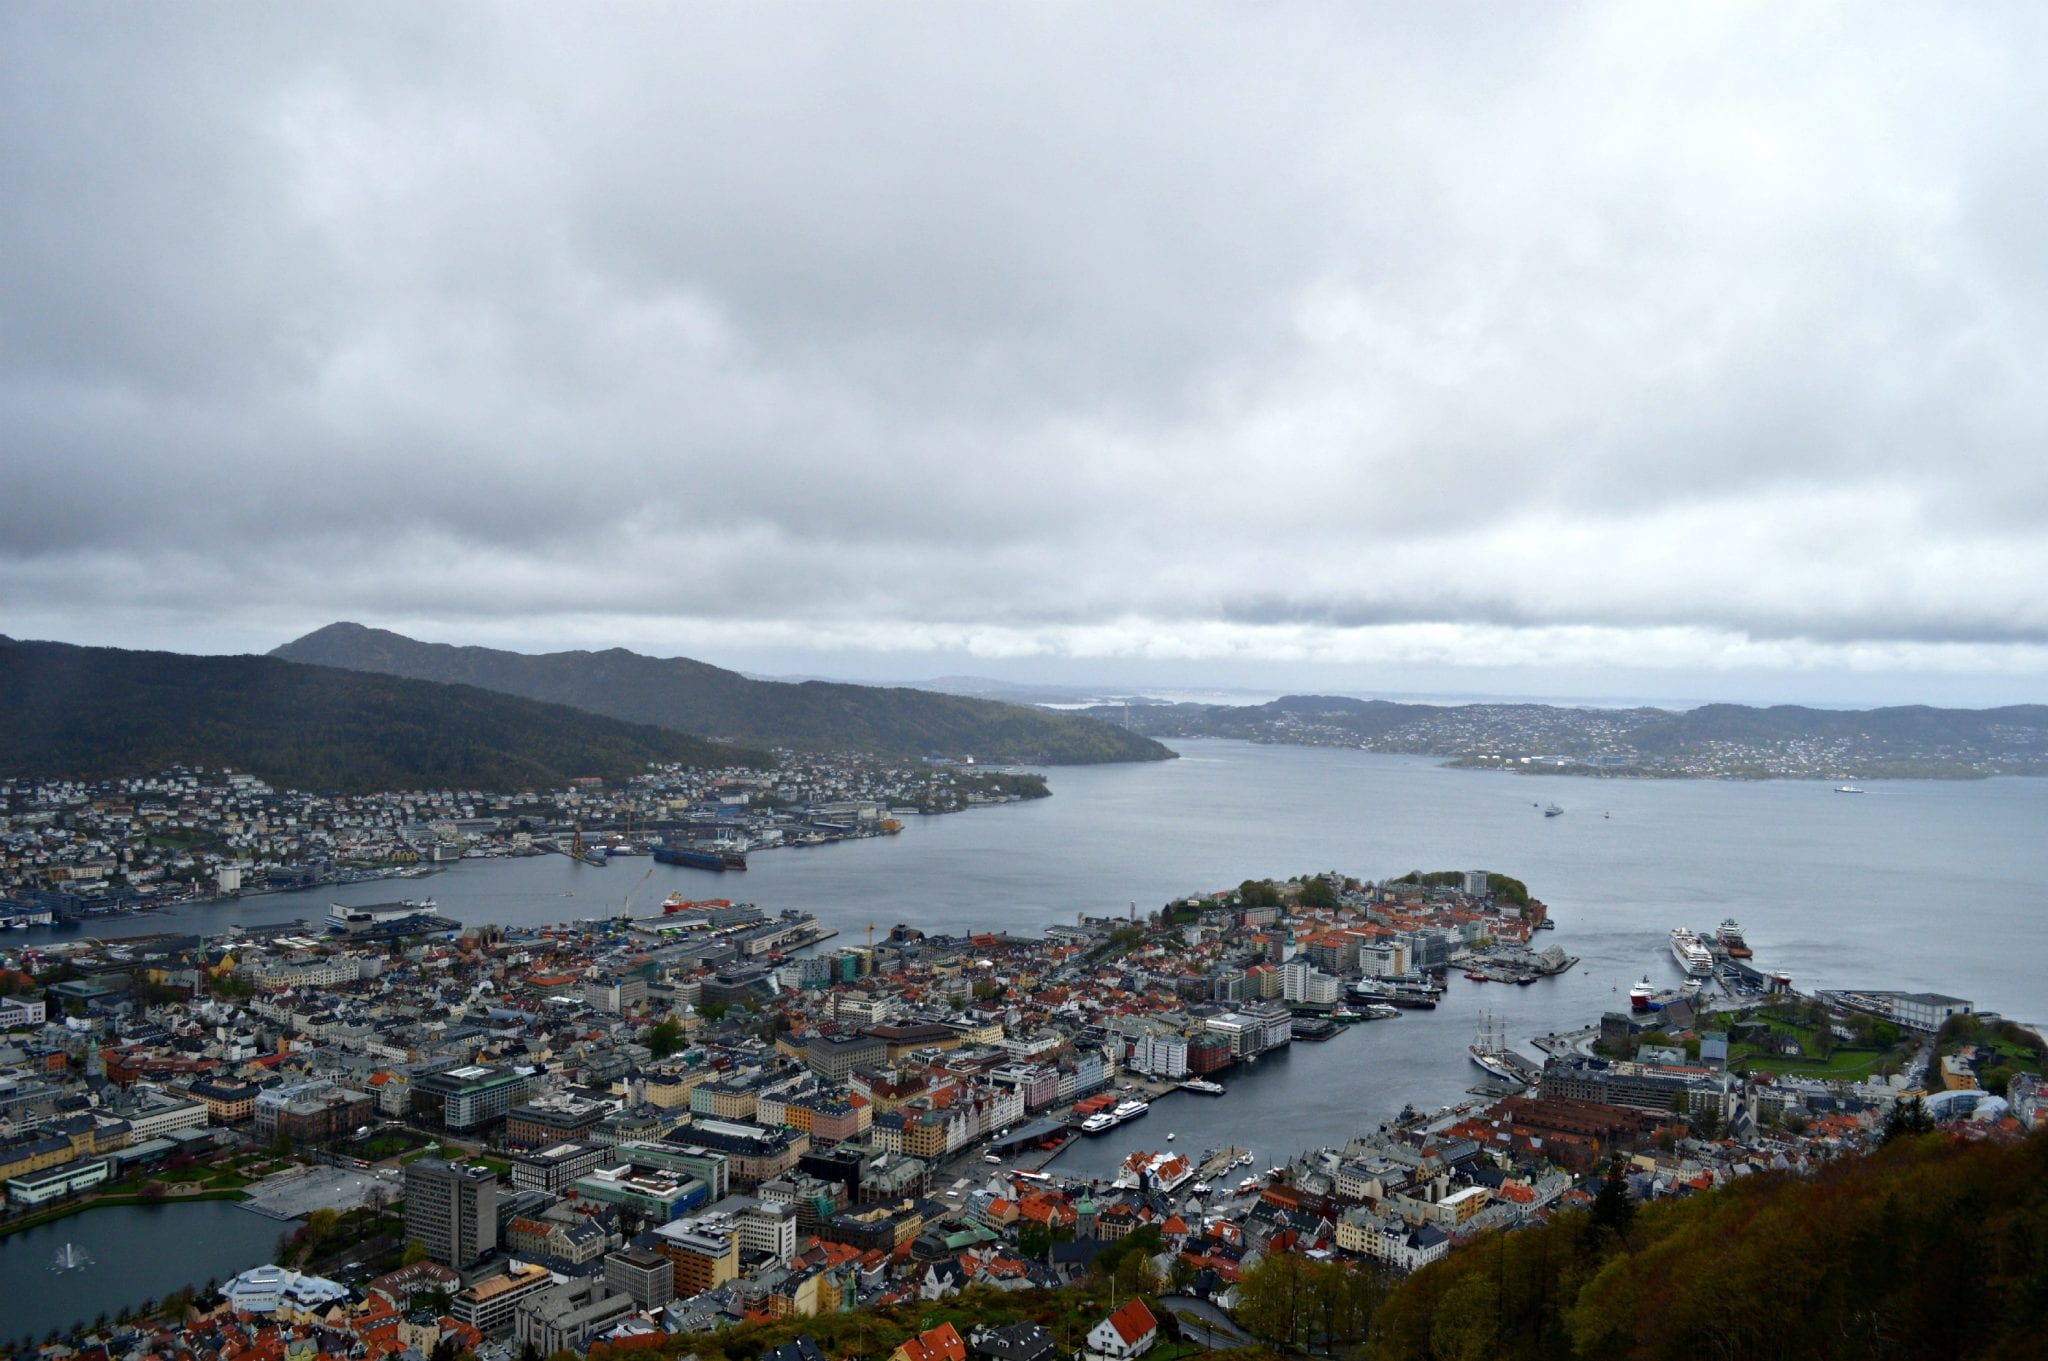 Bergen Norway Sightseeing – 5 things to do